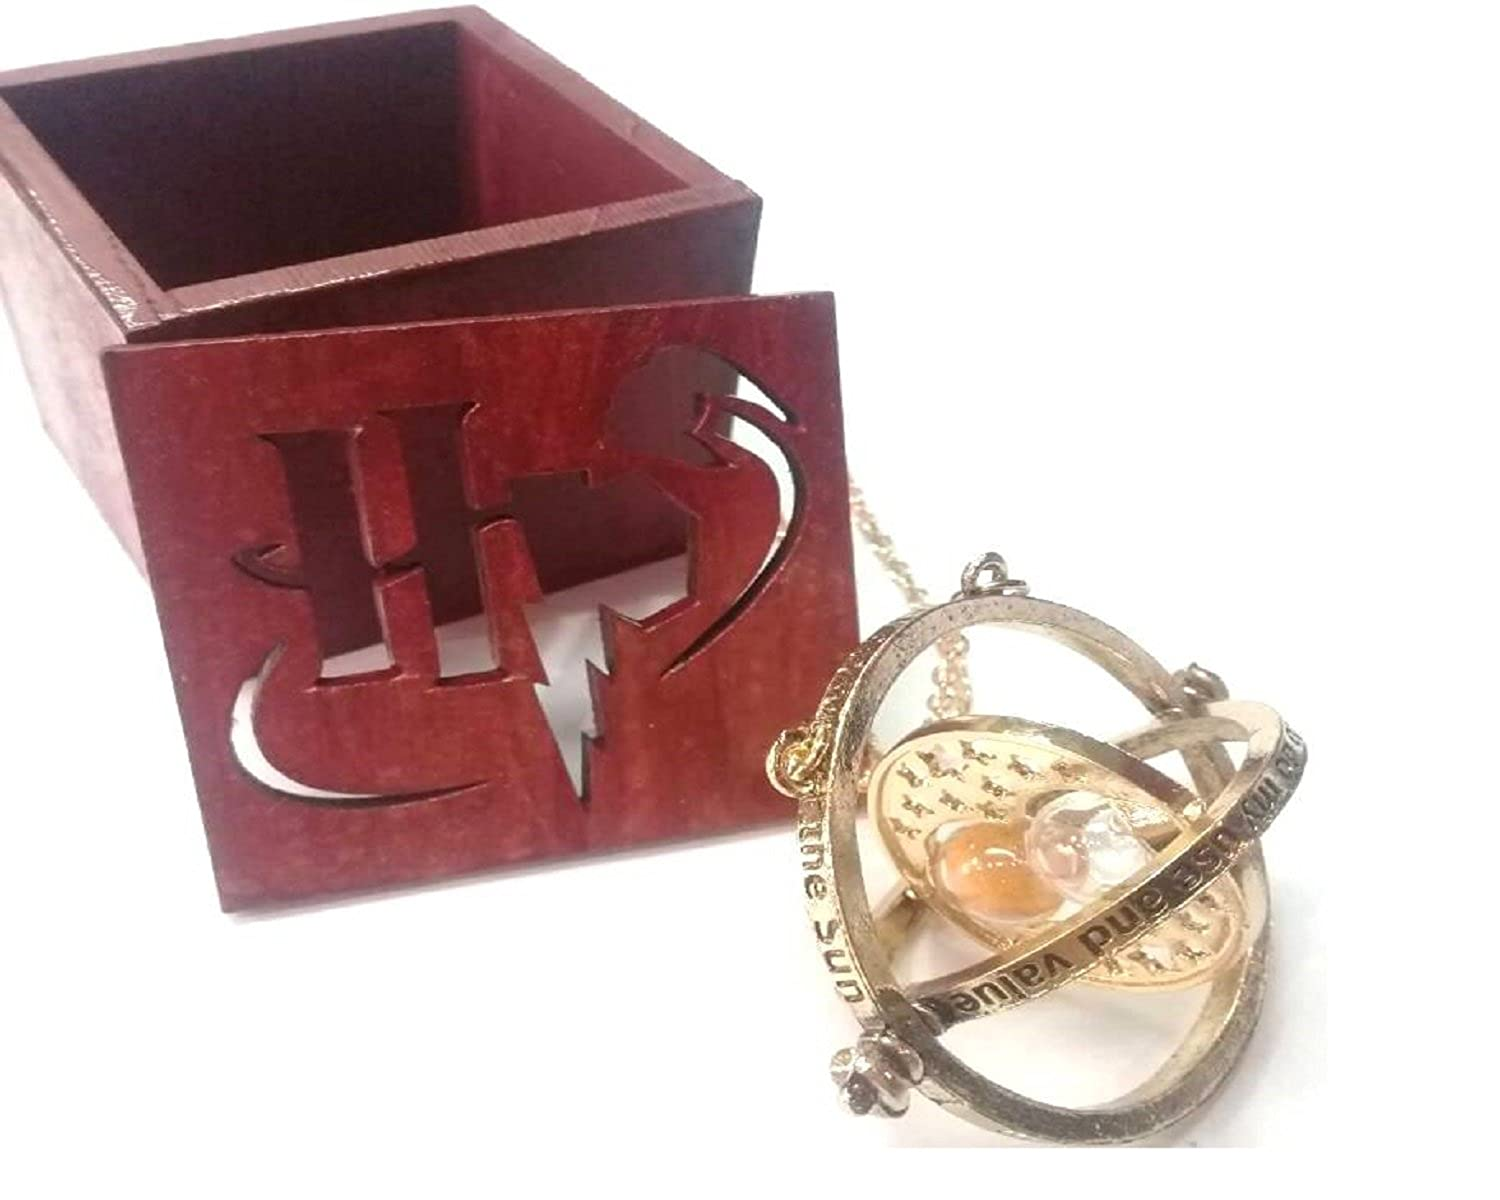 GSC Moda Harry Potter - Hermione 's Time Turner Granger Rotating Hour Glass with its Wooden Box Gift